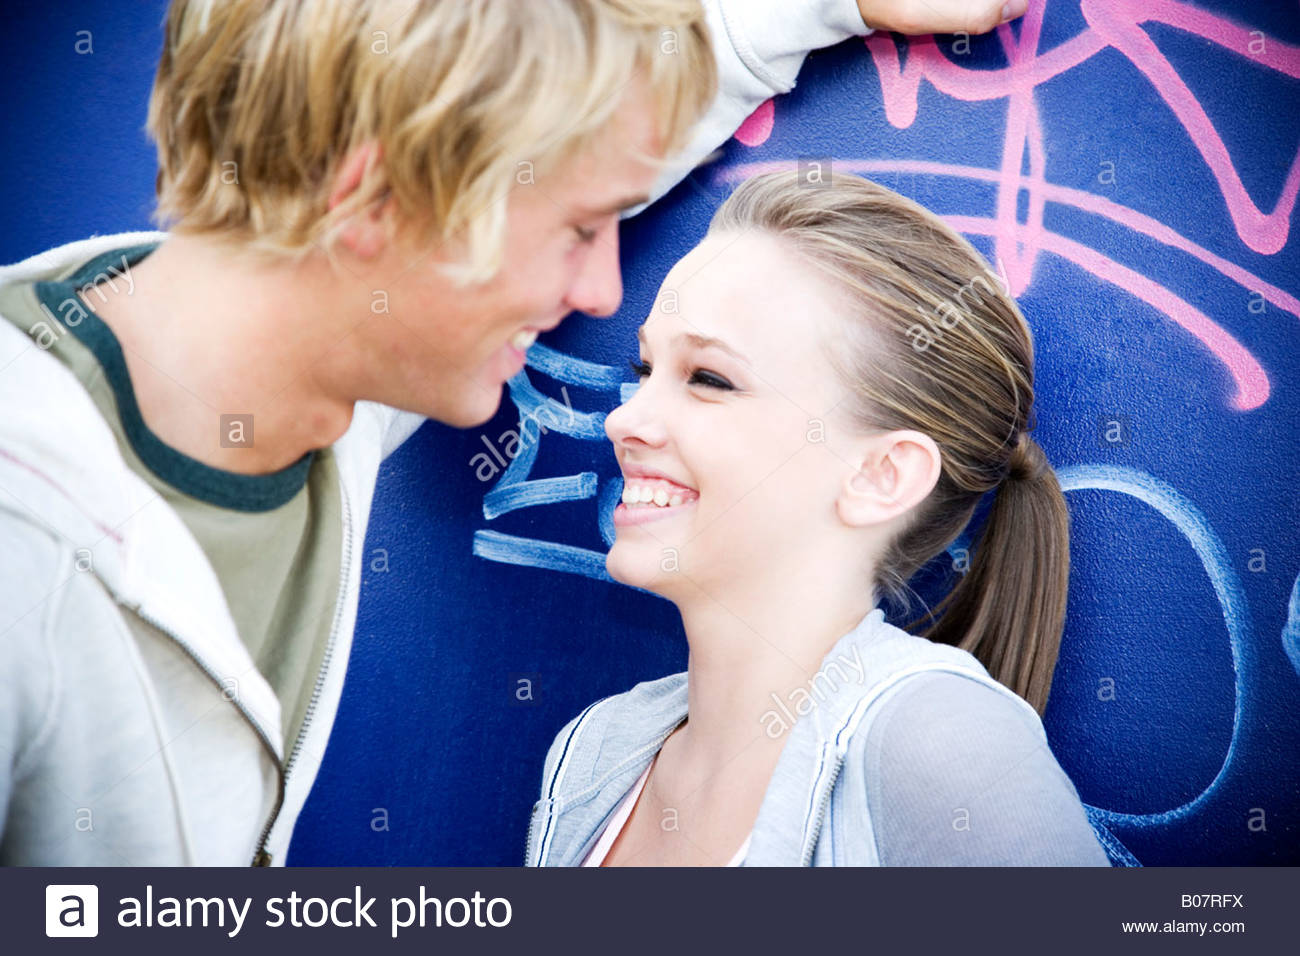 Young teenage couple in front of a graffiti covered wall - Stock Image